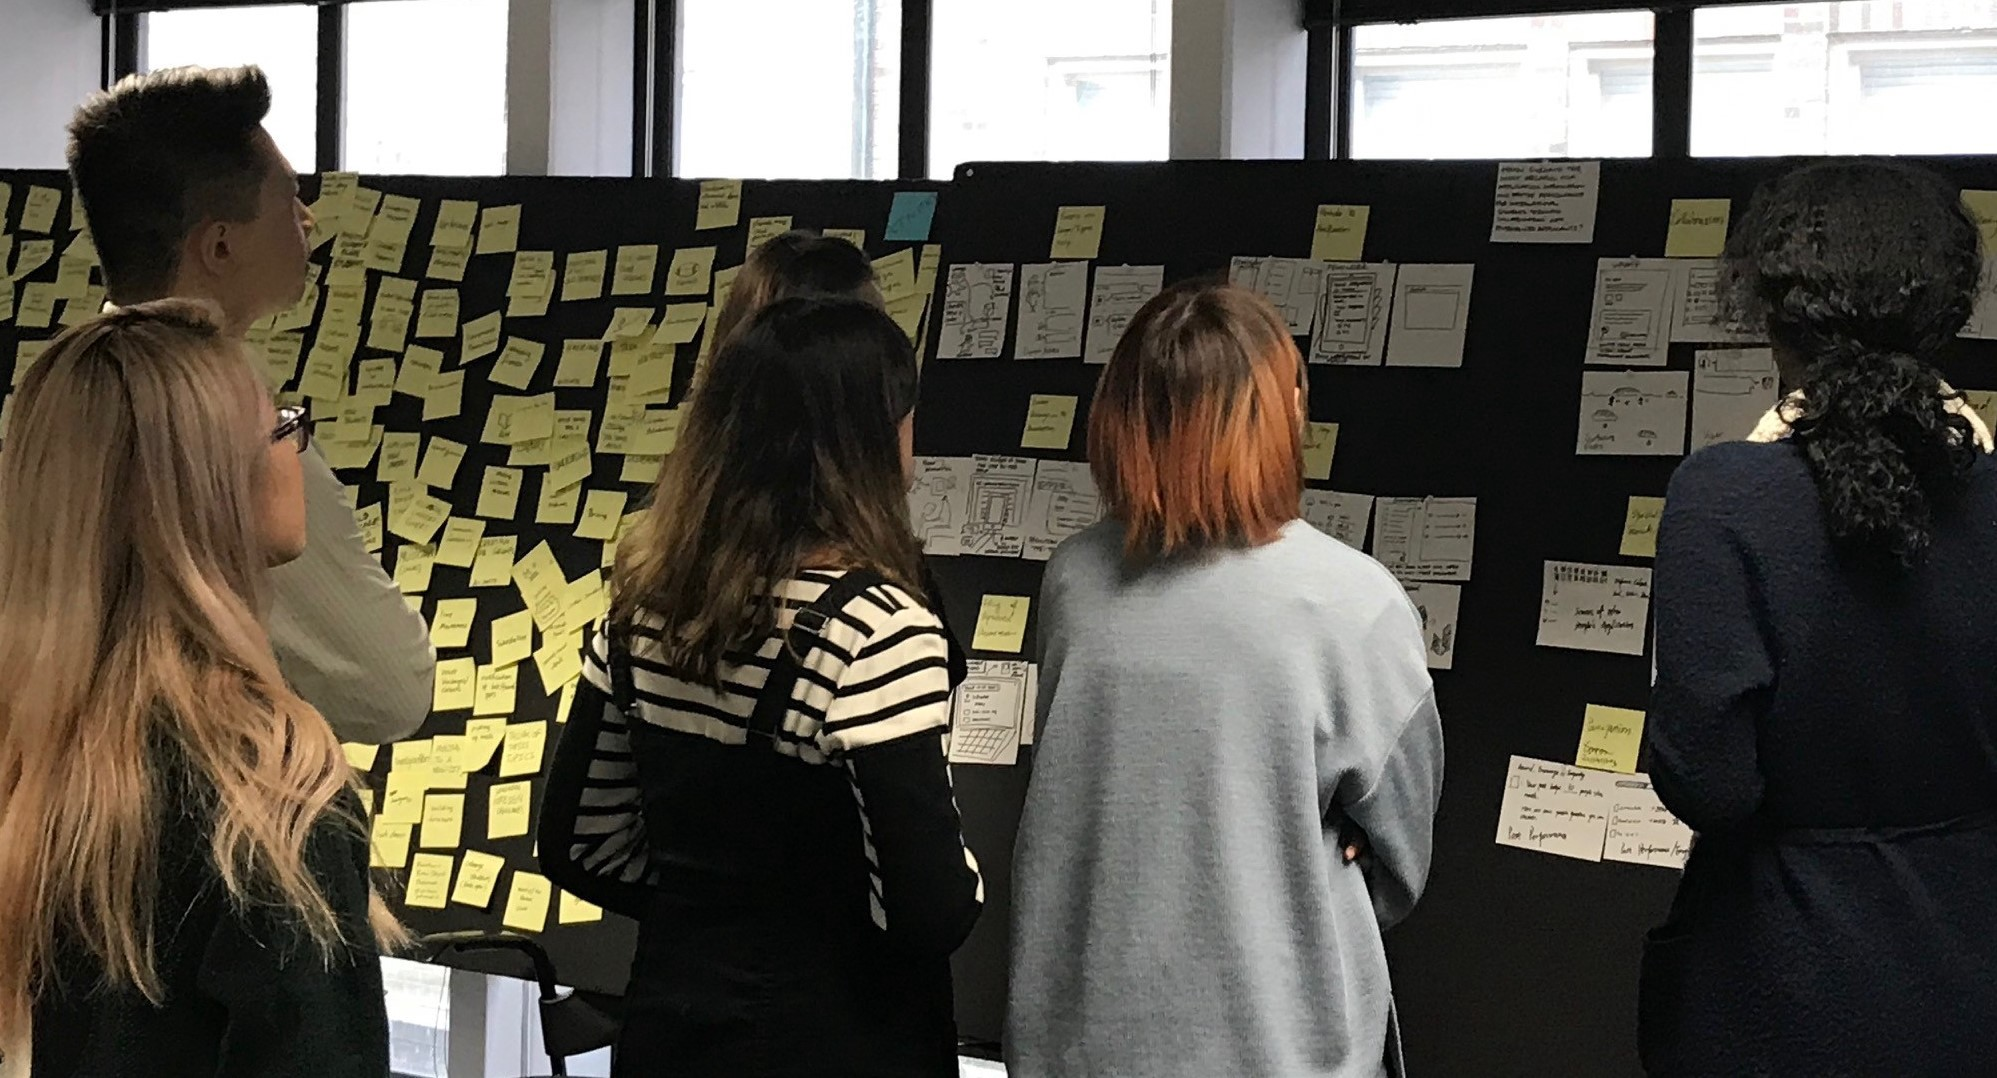 Five people look up groups of post-it notes on a blackboard